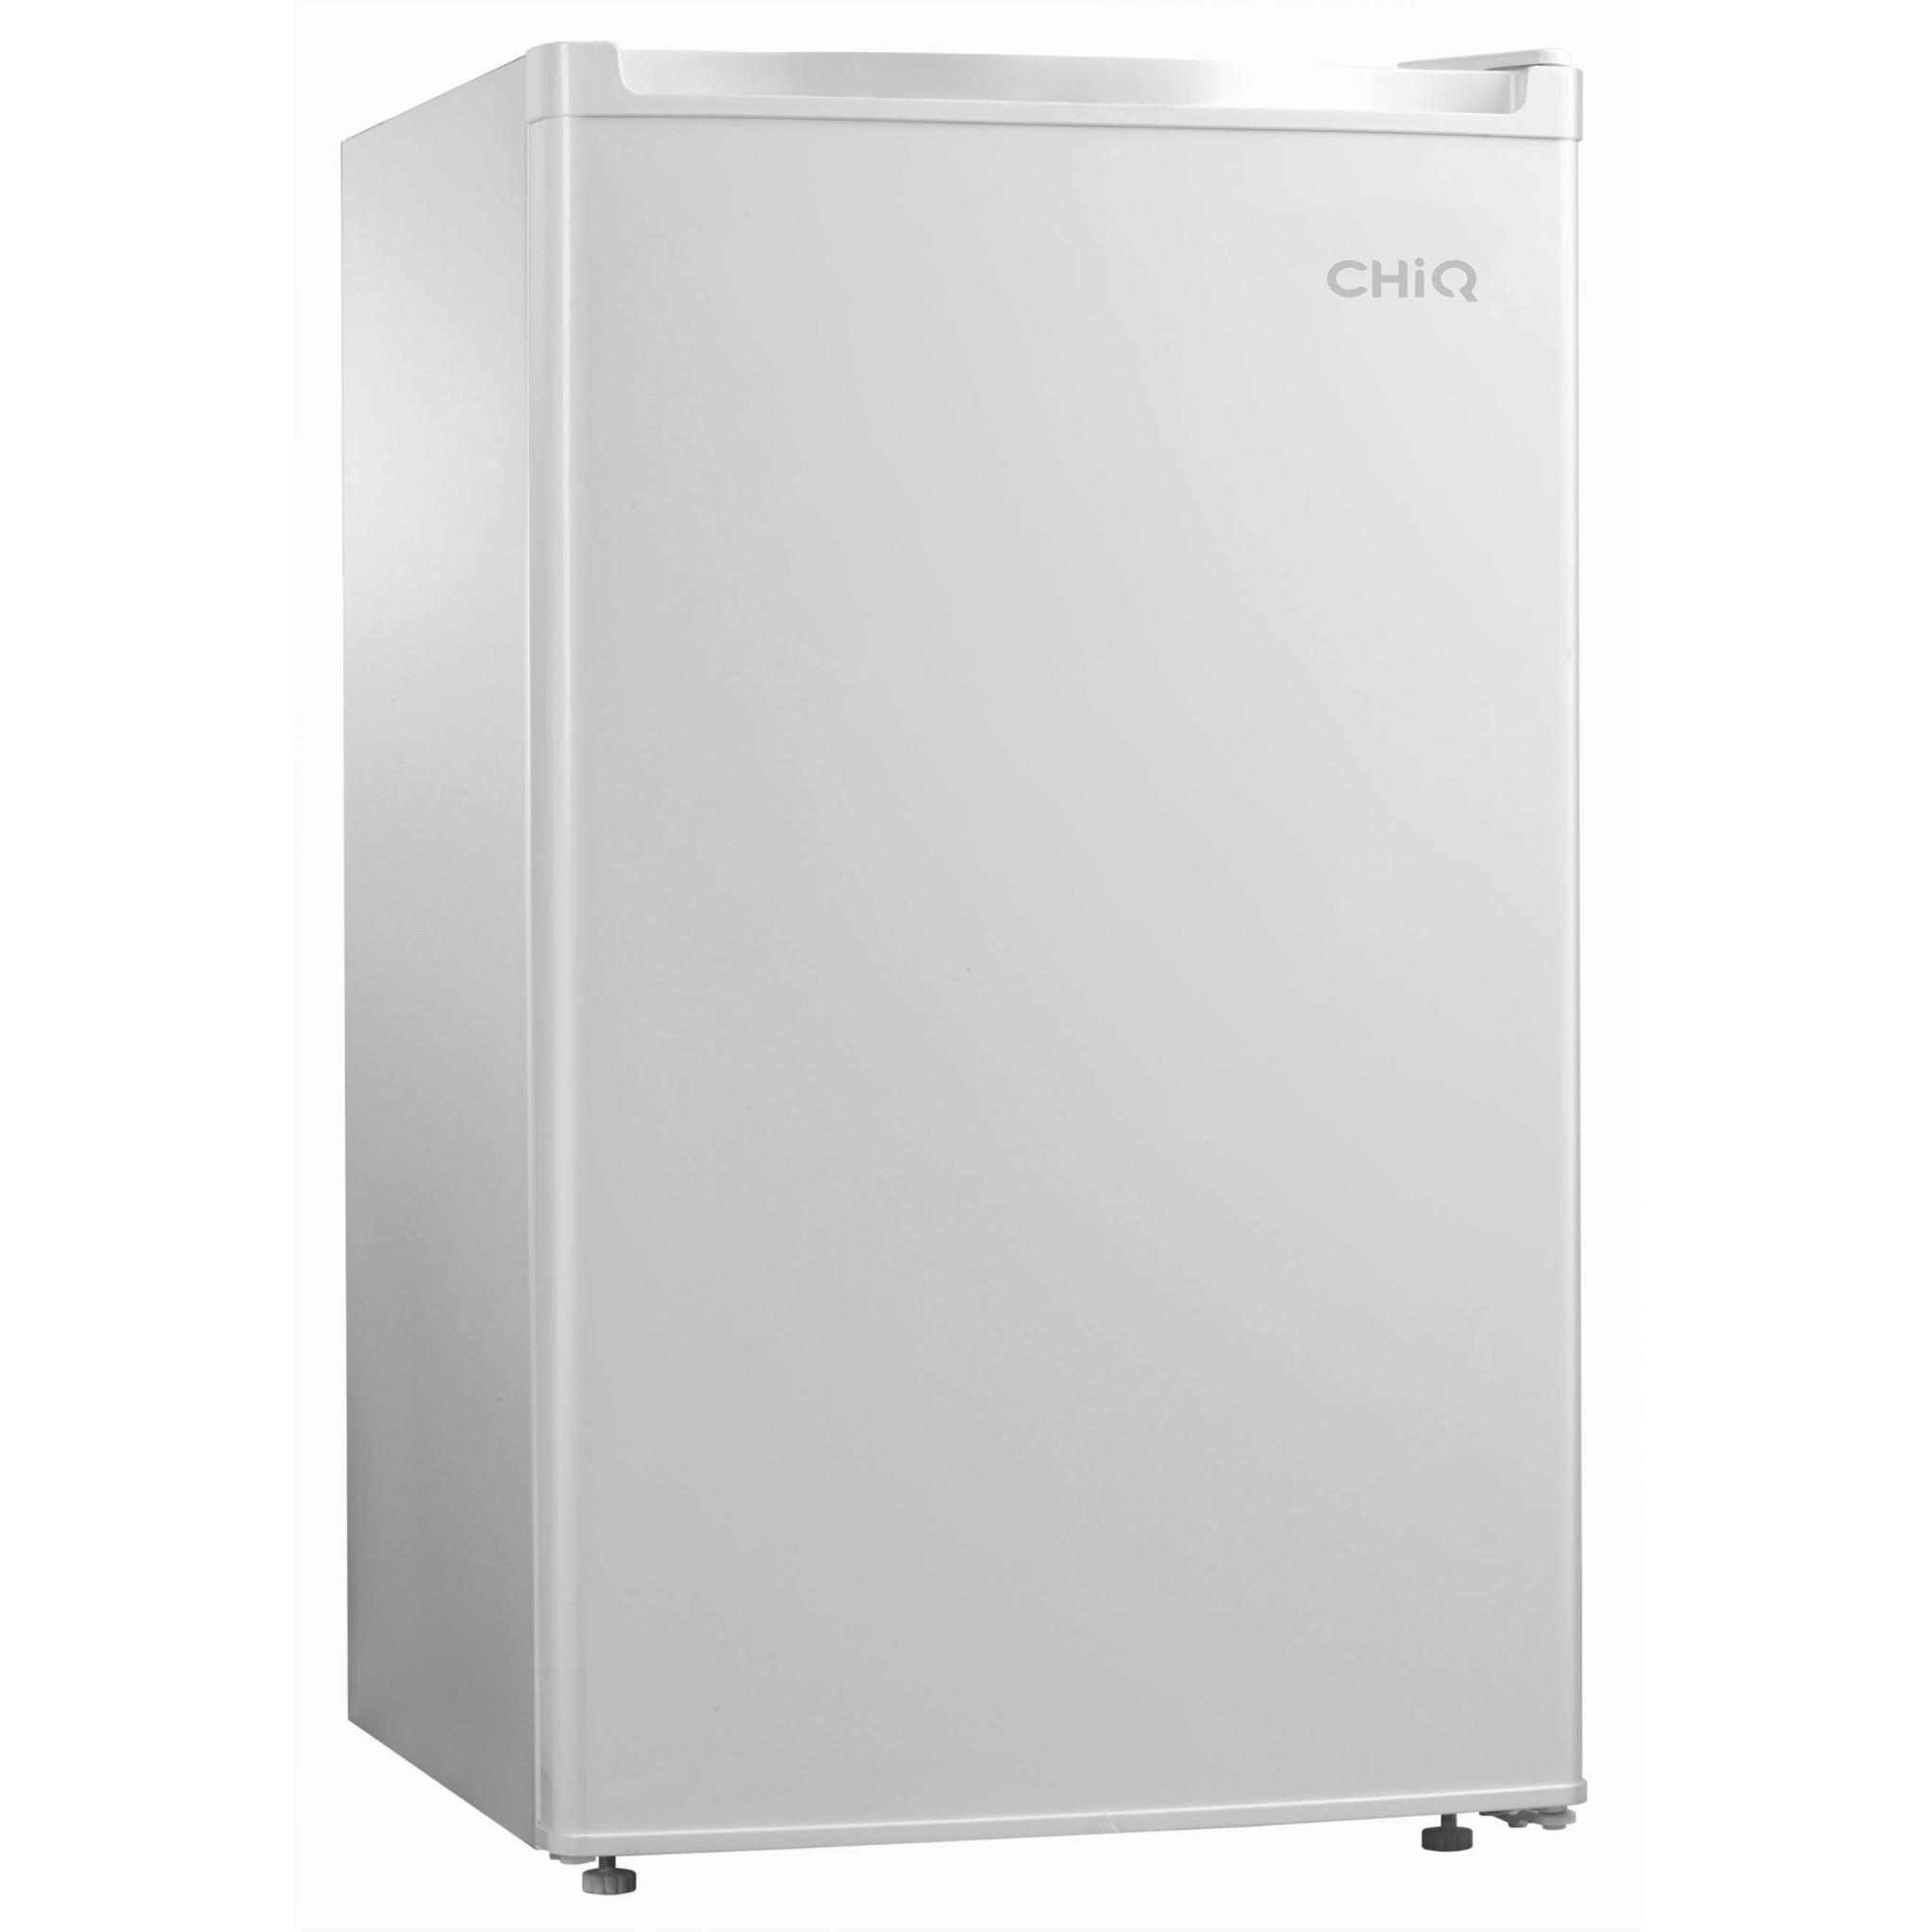 CHiQ CSR092W 92L Bar Fridge